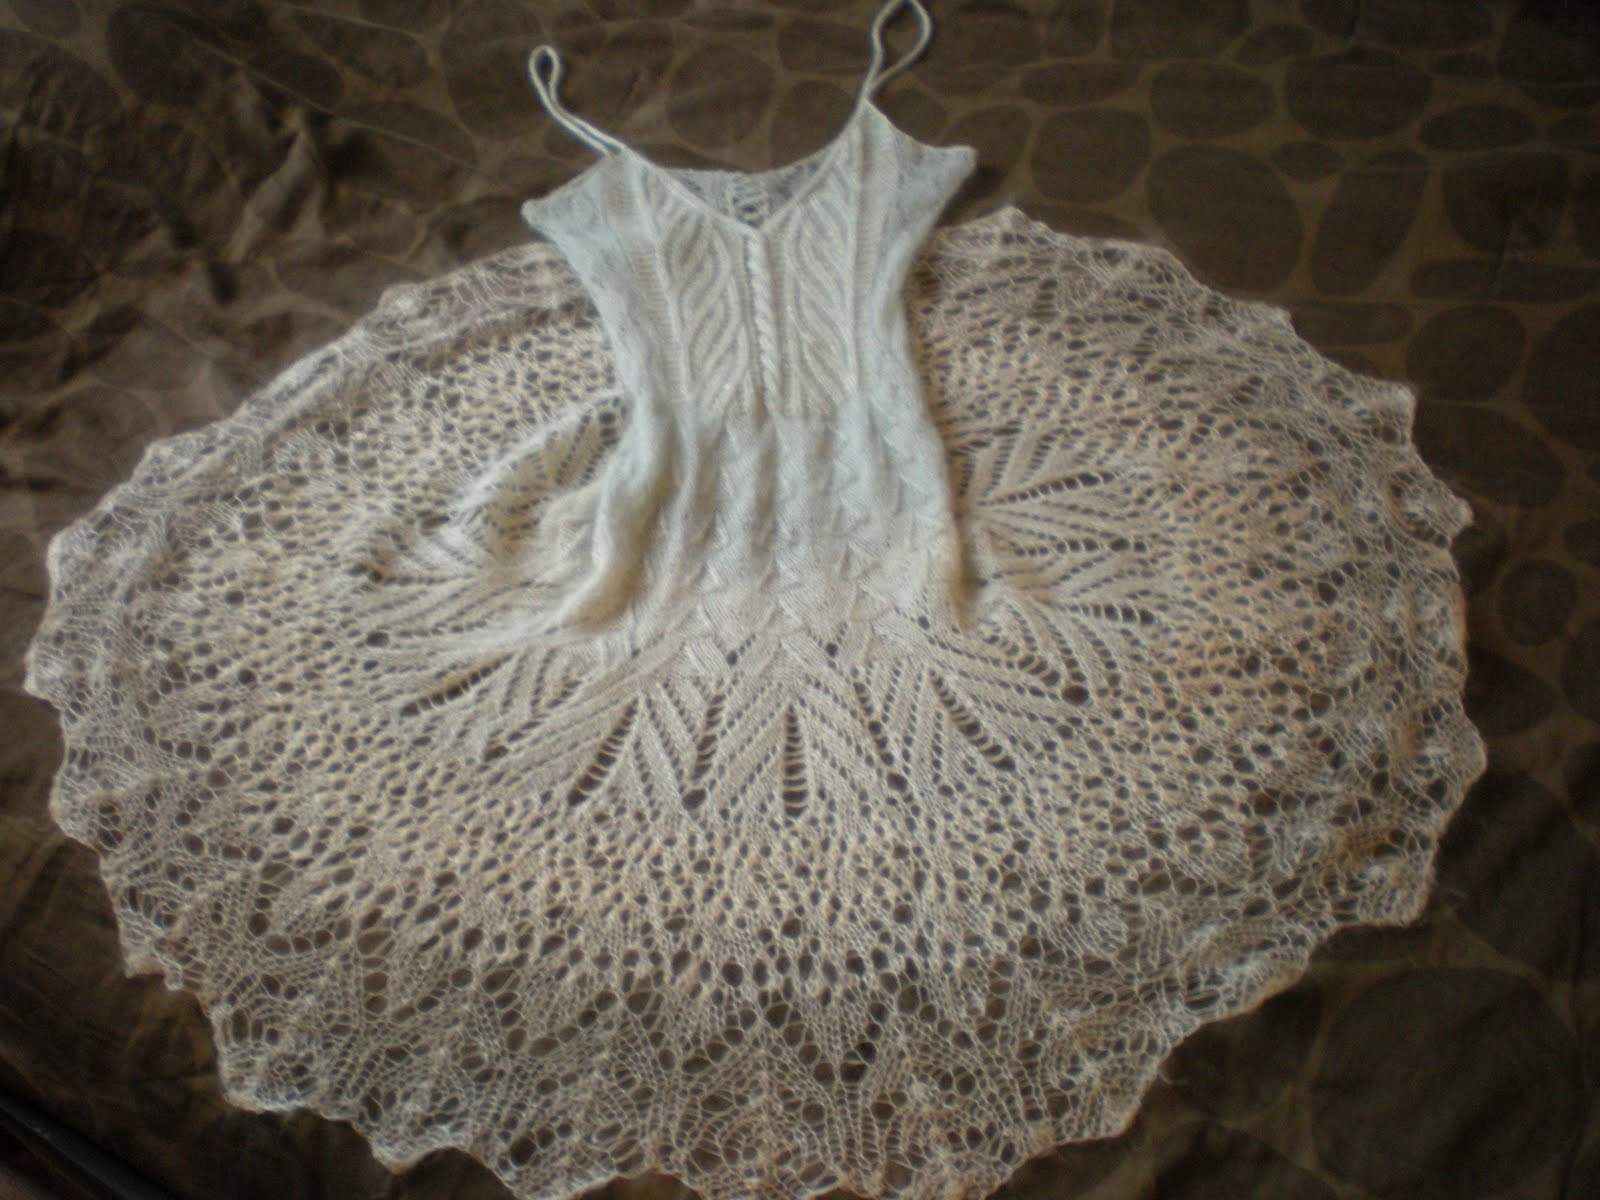 Mohair Lace Knitting Pattern Free : Laura Zukaite: Magic of Mohair Competition sponsored by ...